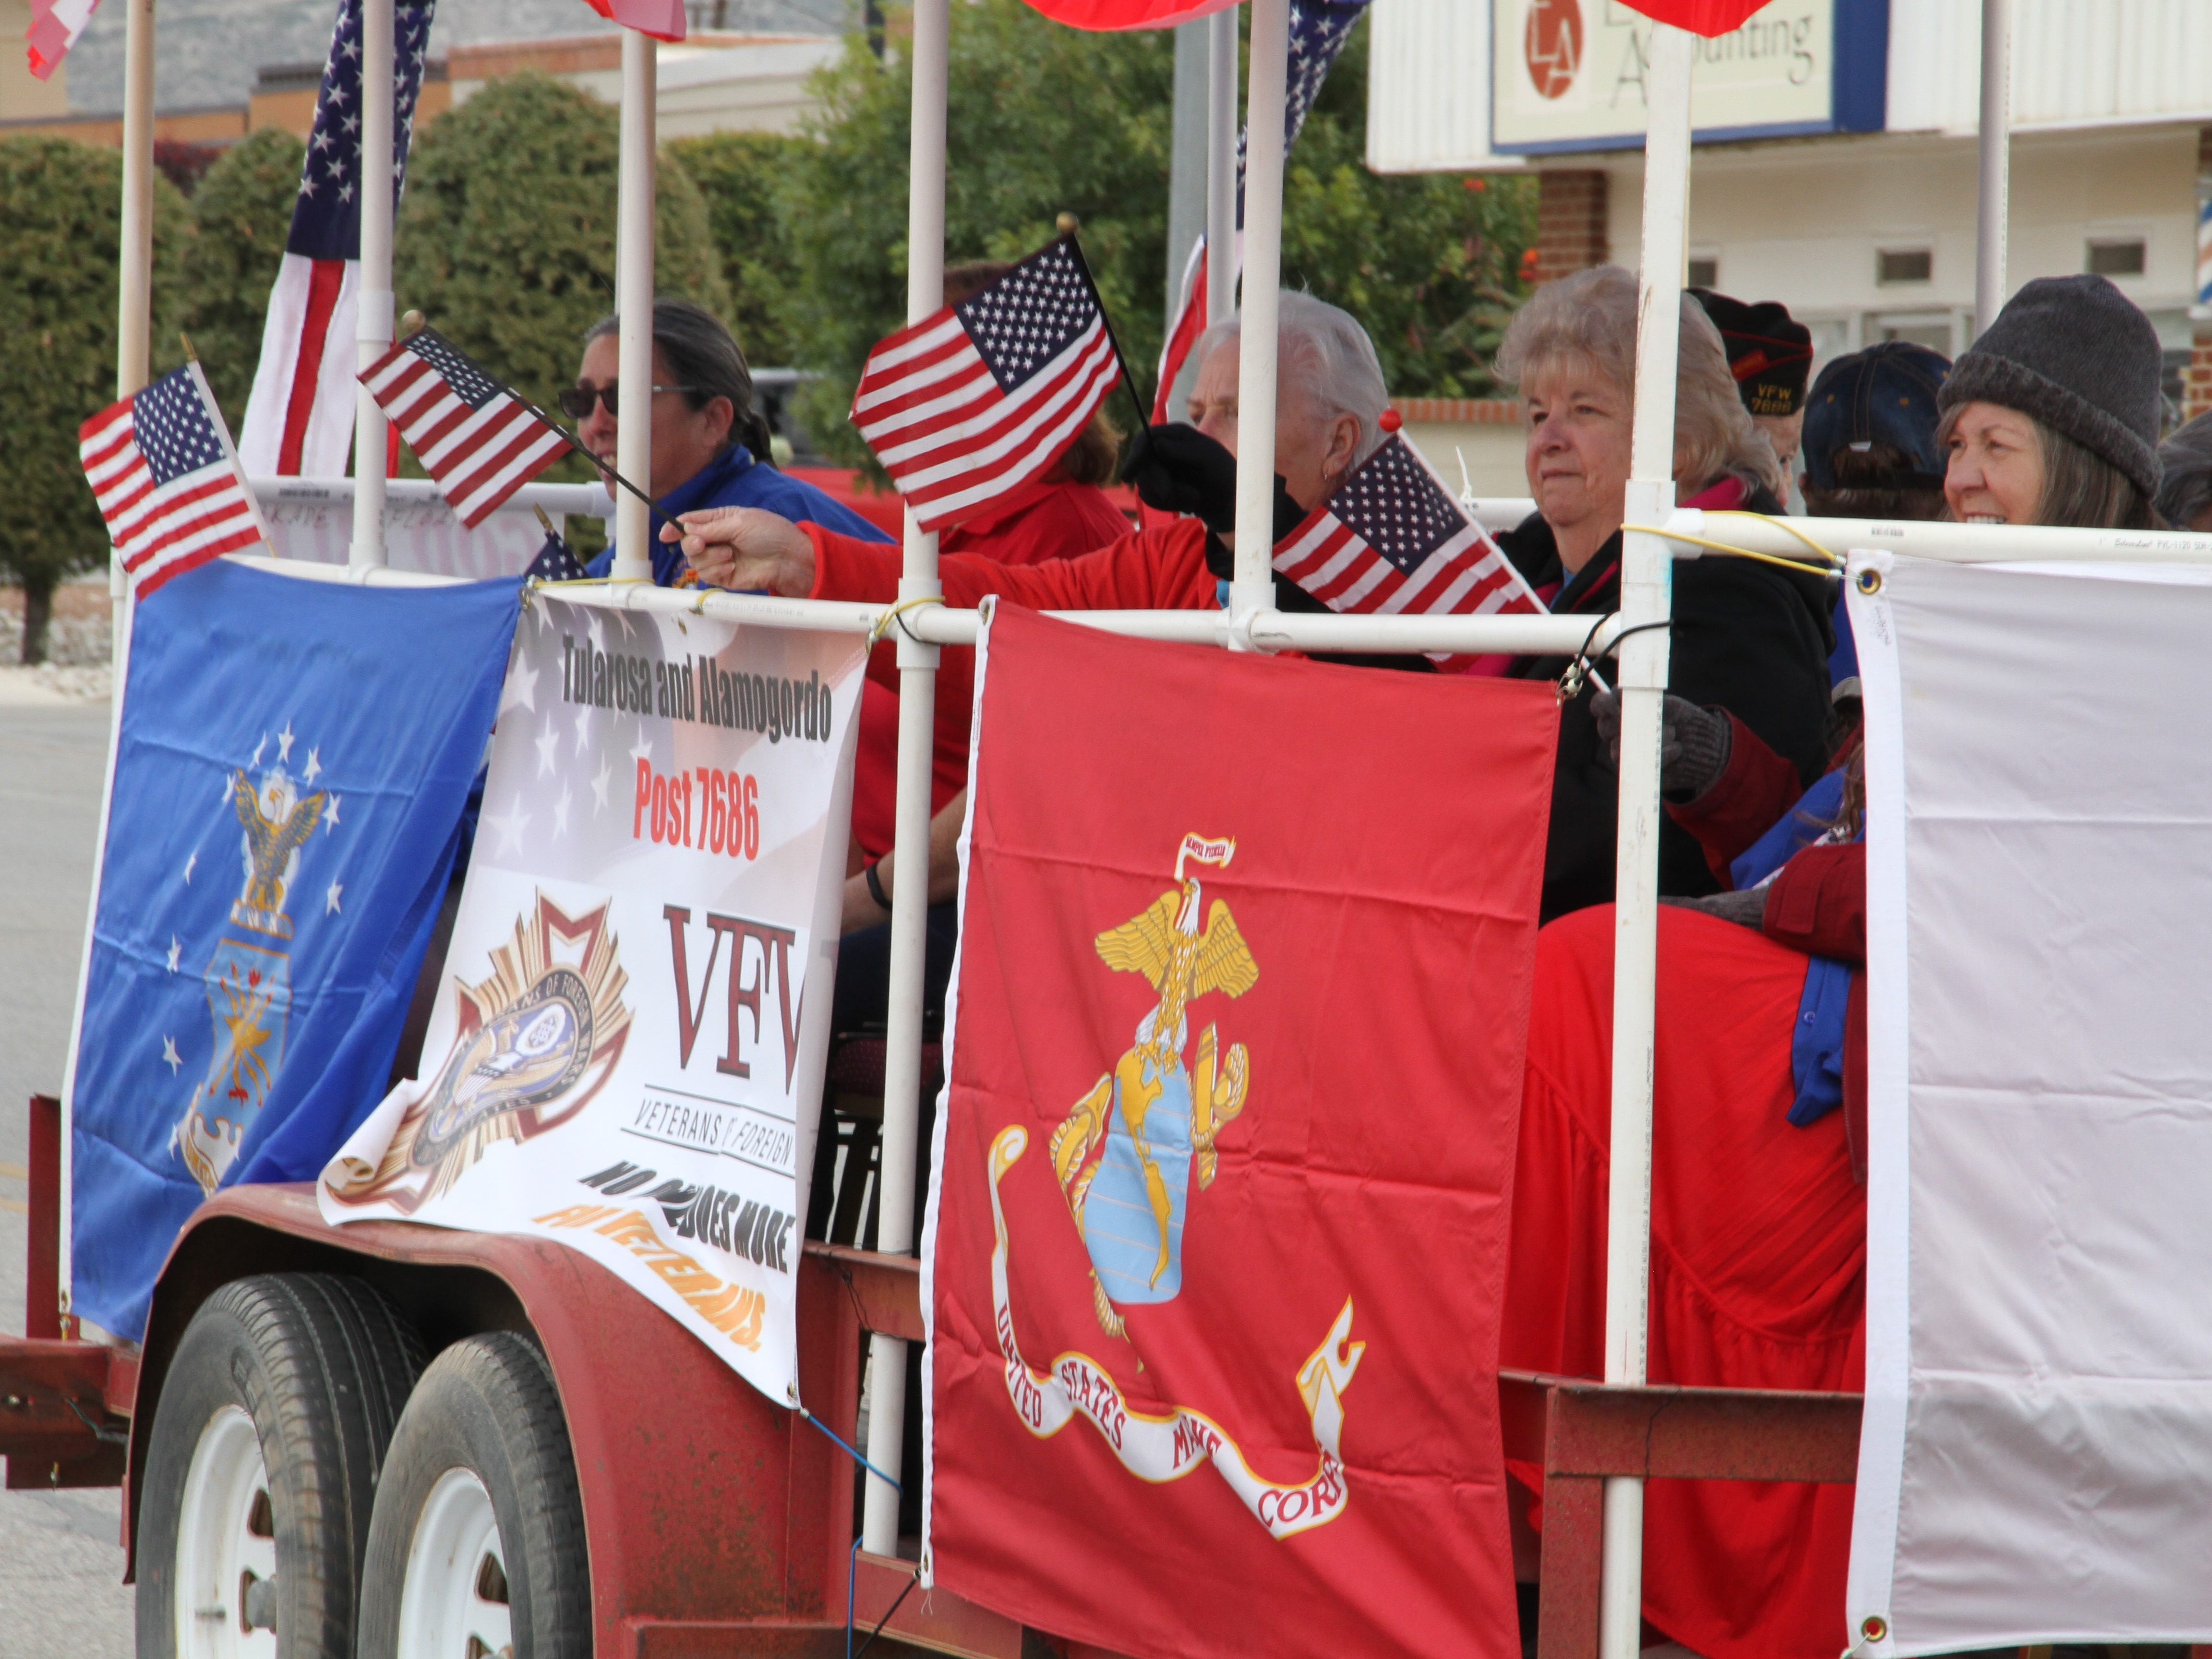 VFW Post 7686 float riders waived flags during the Alamogordo Veterans Day Parade Saturday.